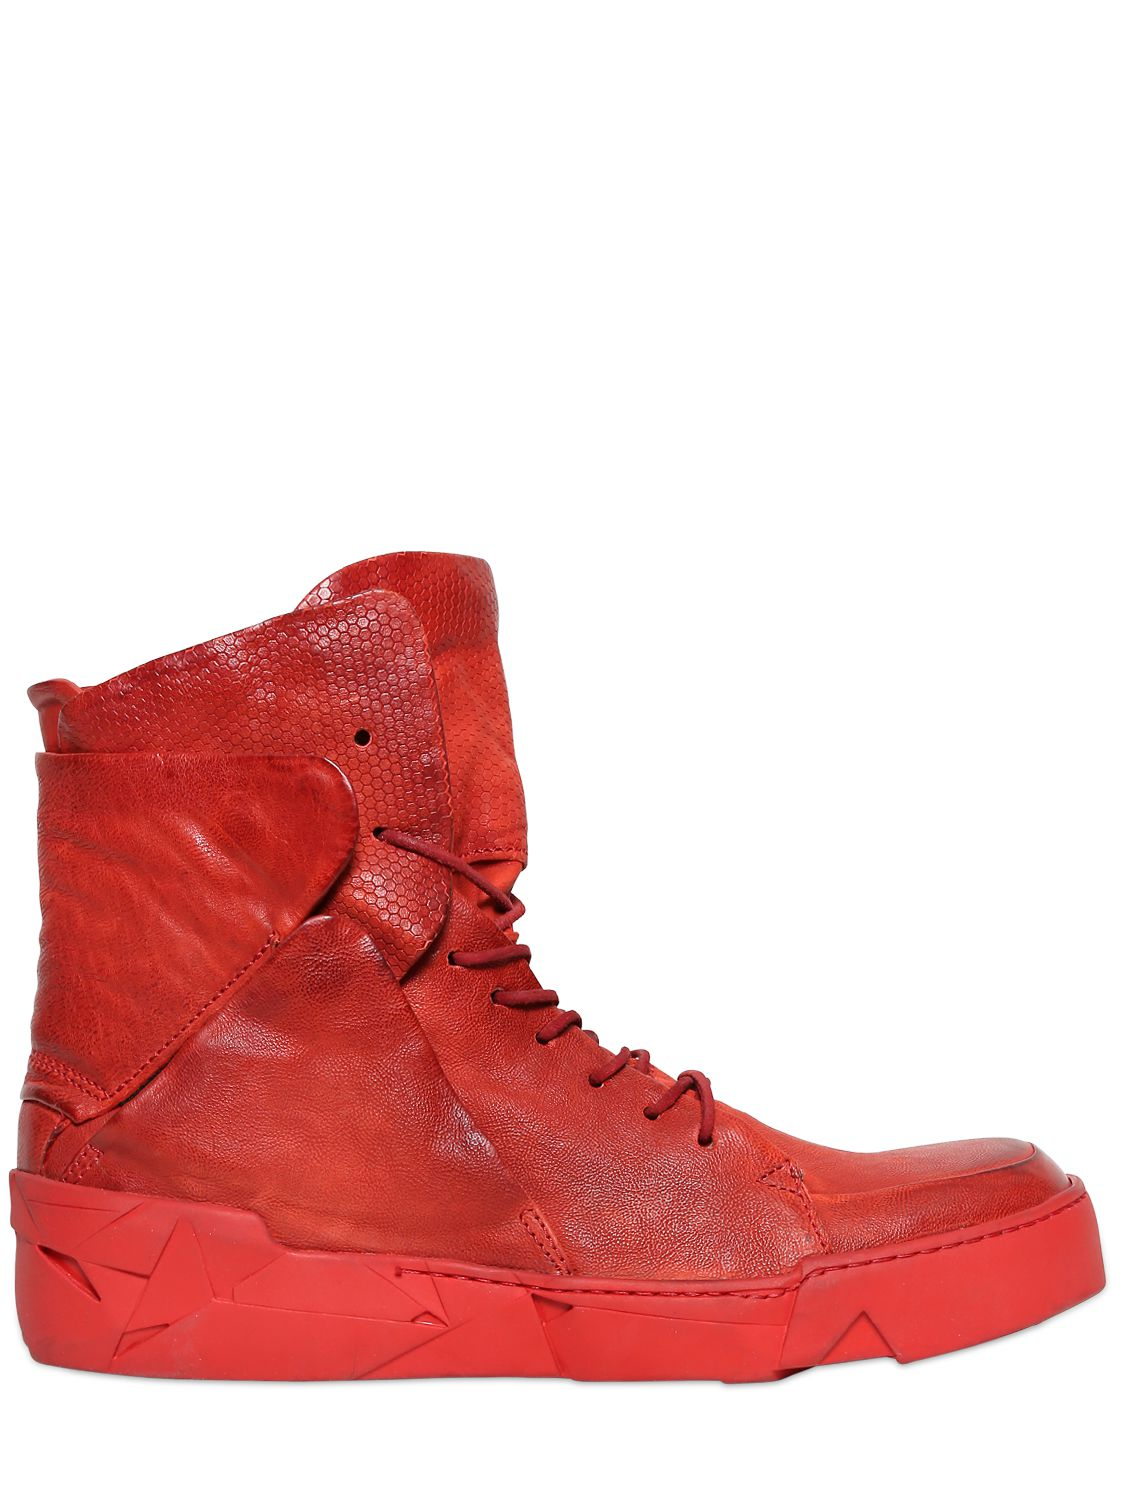 98 Best Designer Jean Louis Sabaji Images On Pinterest: A.S.98 Embossed Leather High Top Sneakers In Red